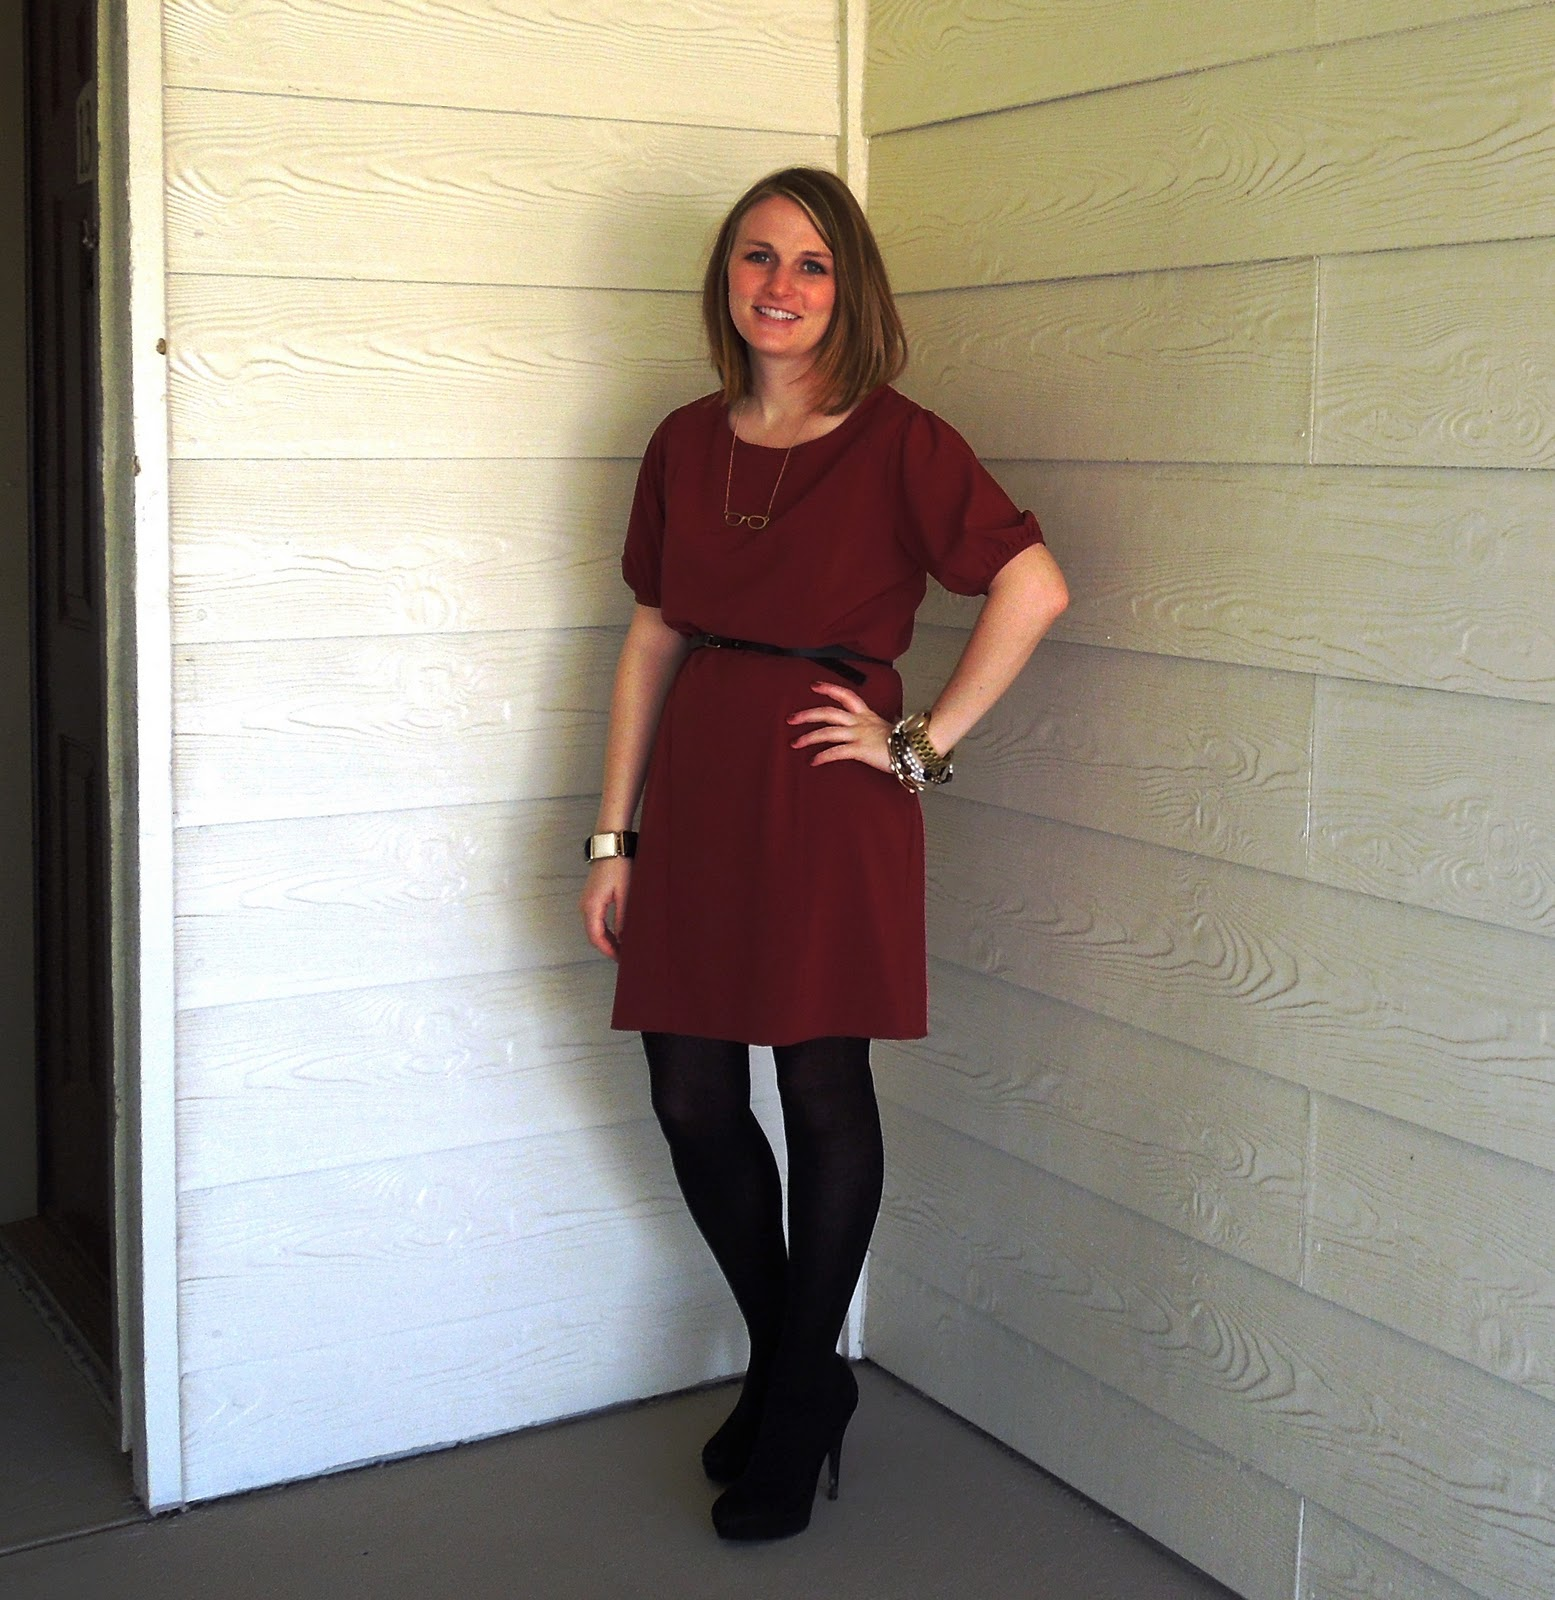 Black dress with touch of red - Final Touch Red Dress Strut Black Leather Belt J Crew Factory Store Black Tights Forever Xxi Lc Lauren Conrad Black Platform Pumps Kohl S